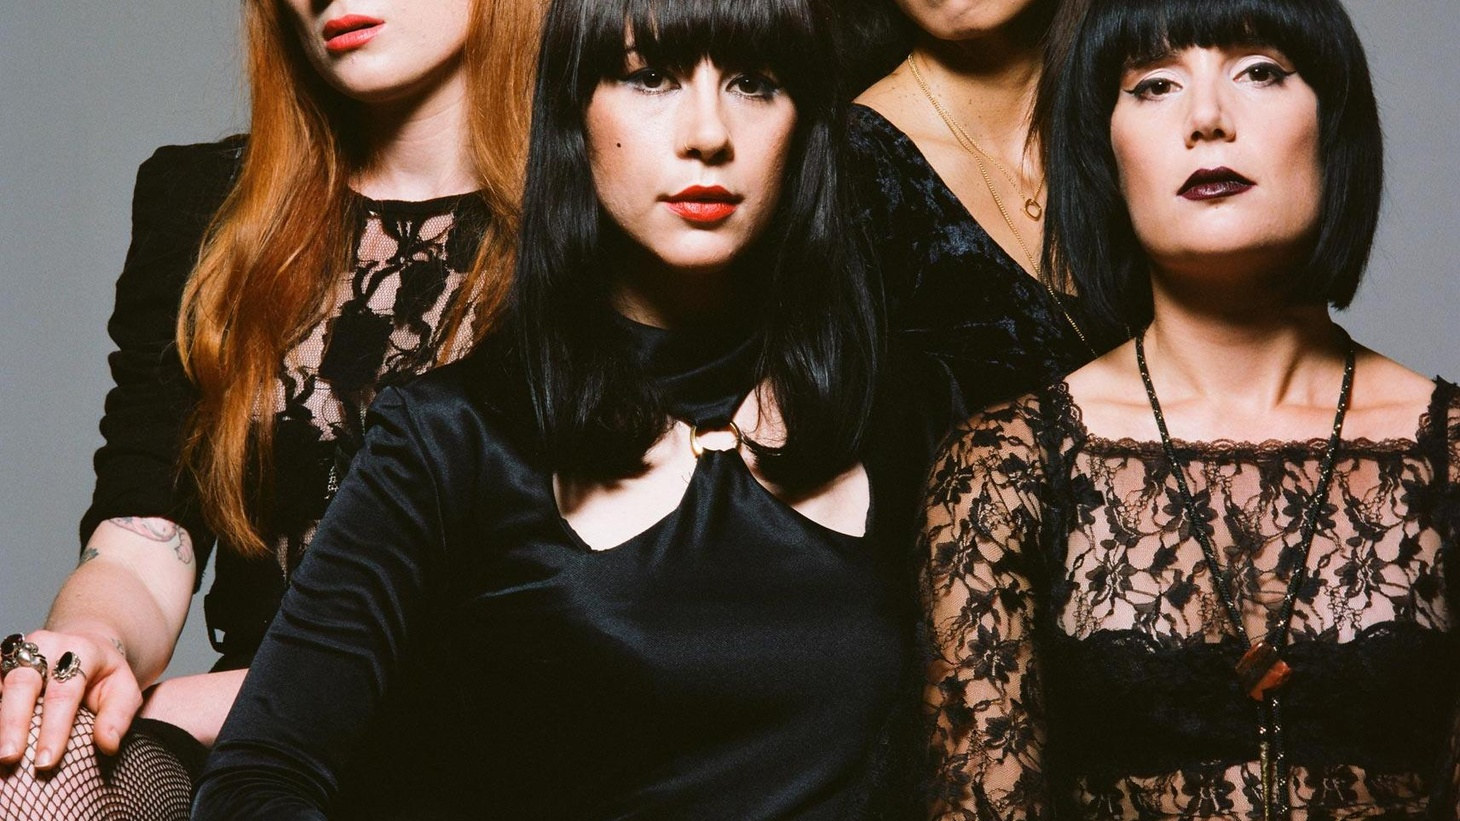 LA's own Dum Dum Girls seem fearless on their new album, drawing inspiration from a range of female artists that came before them, from the Shangri-Las to Chrissie Hynde...